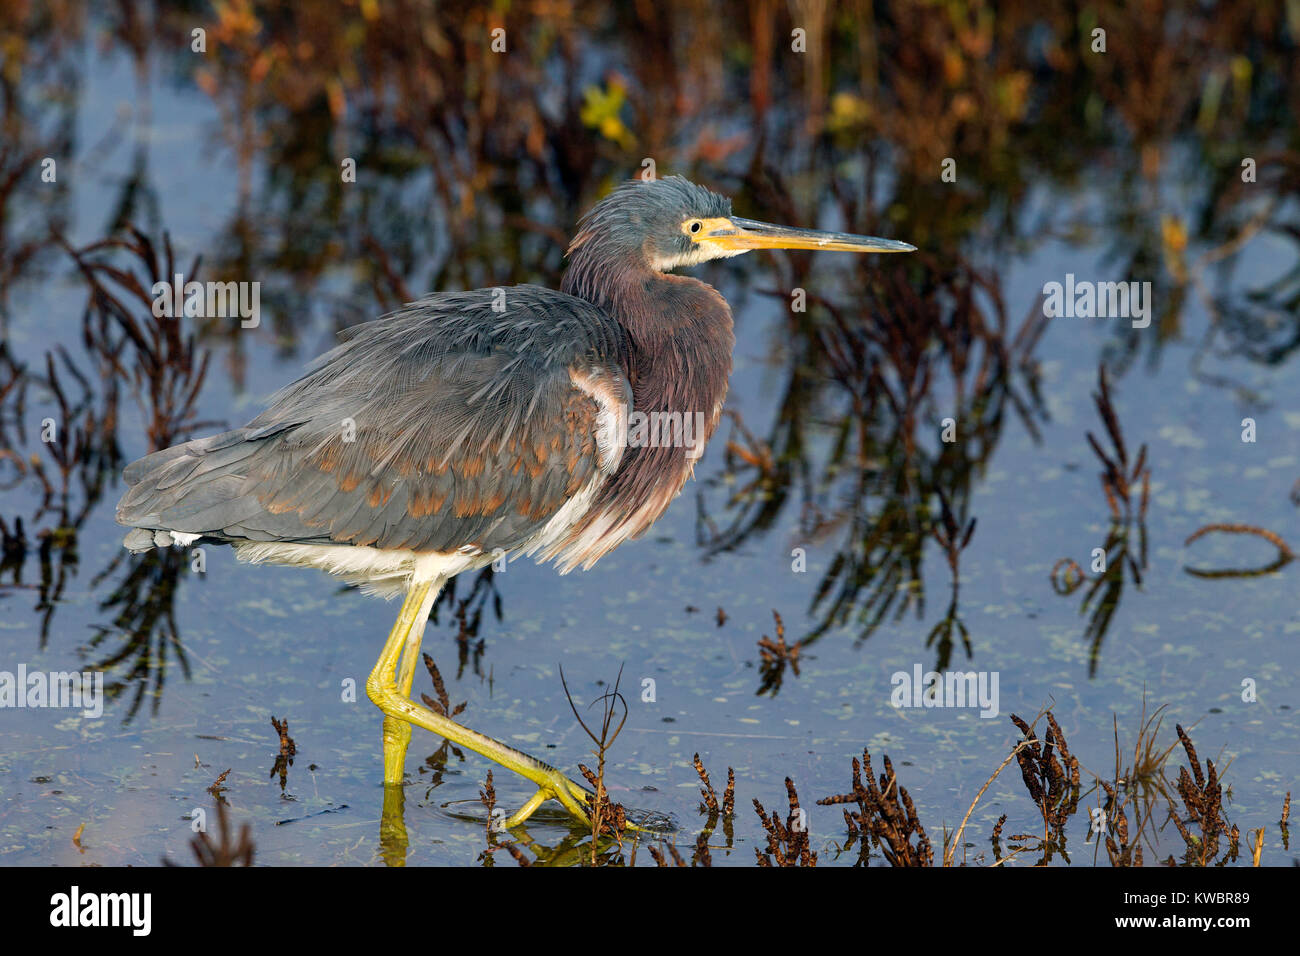 Tricolored Heron in Southern California - Stock Image